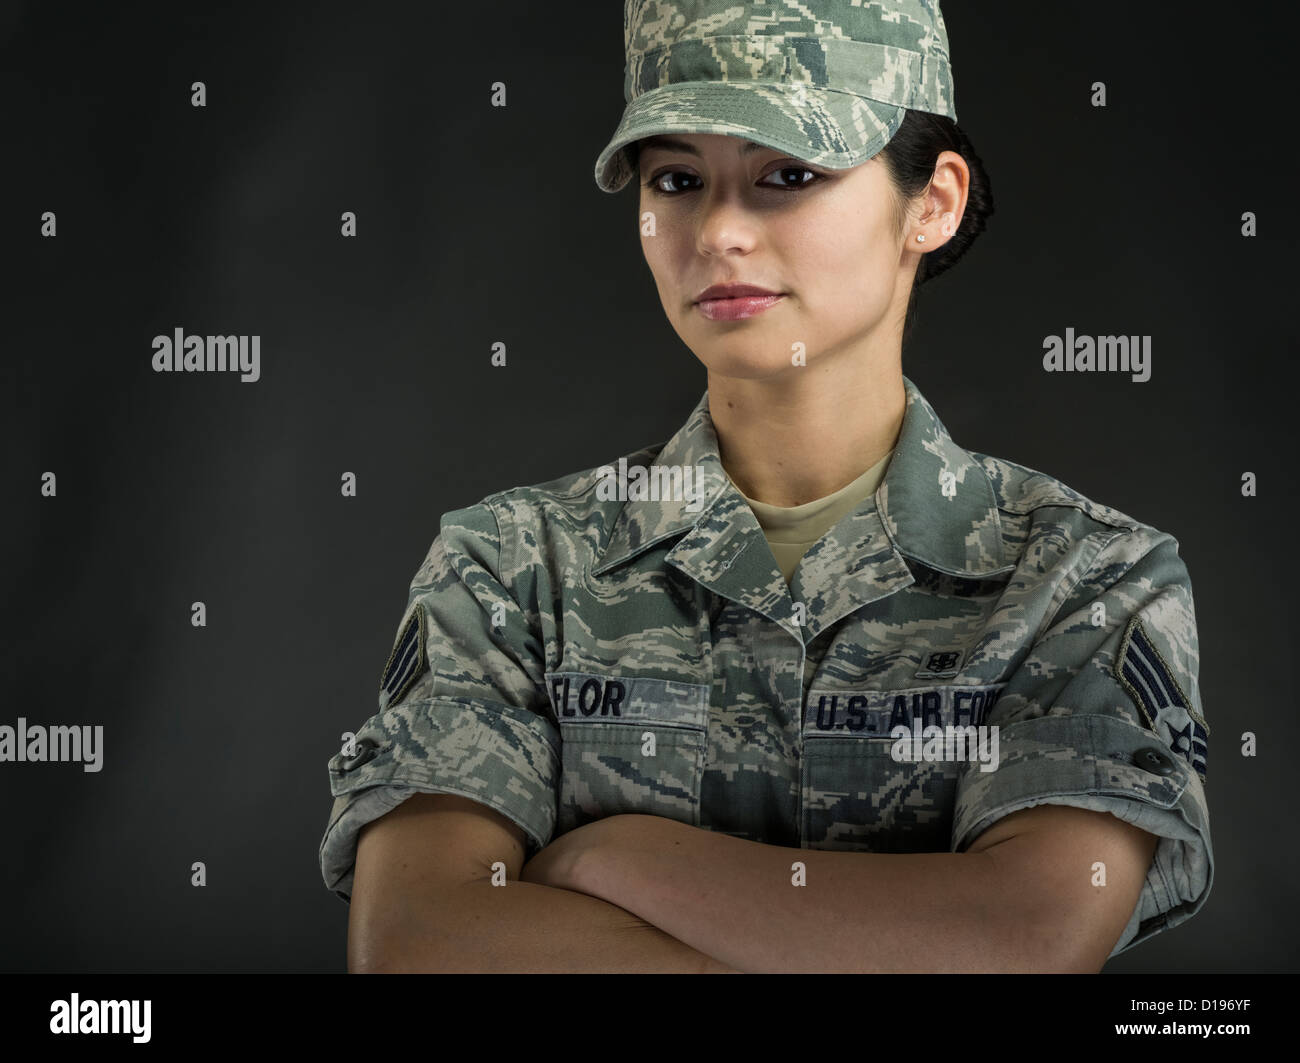 Female United States Marine Corps soldier in Combat Utility Uniform - Stock Image